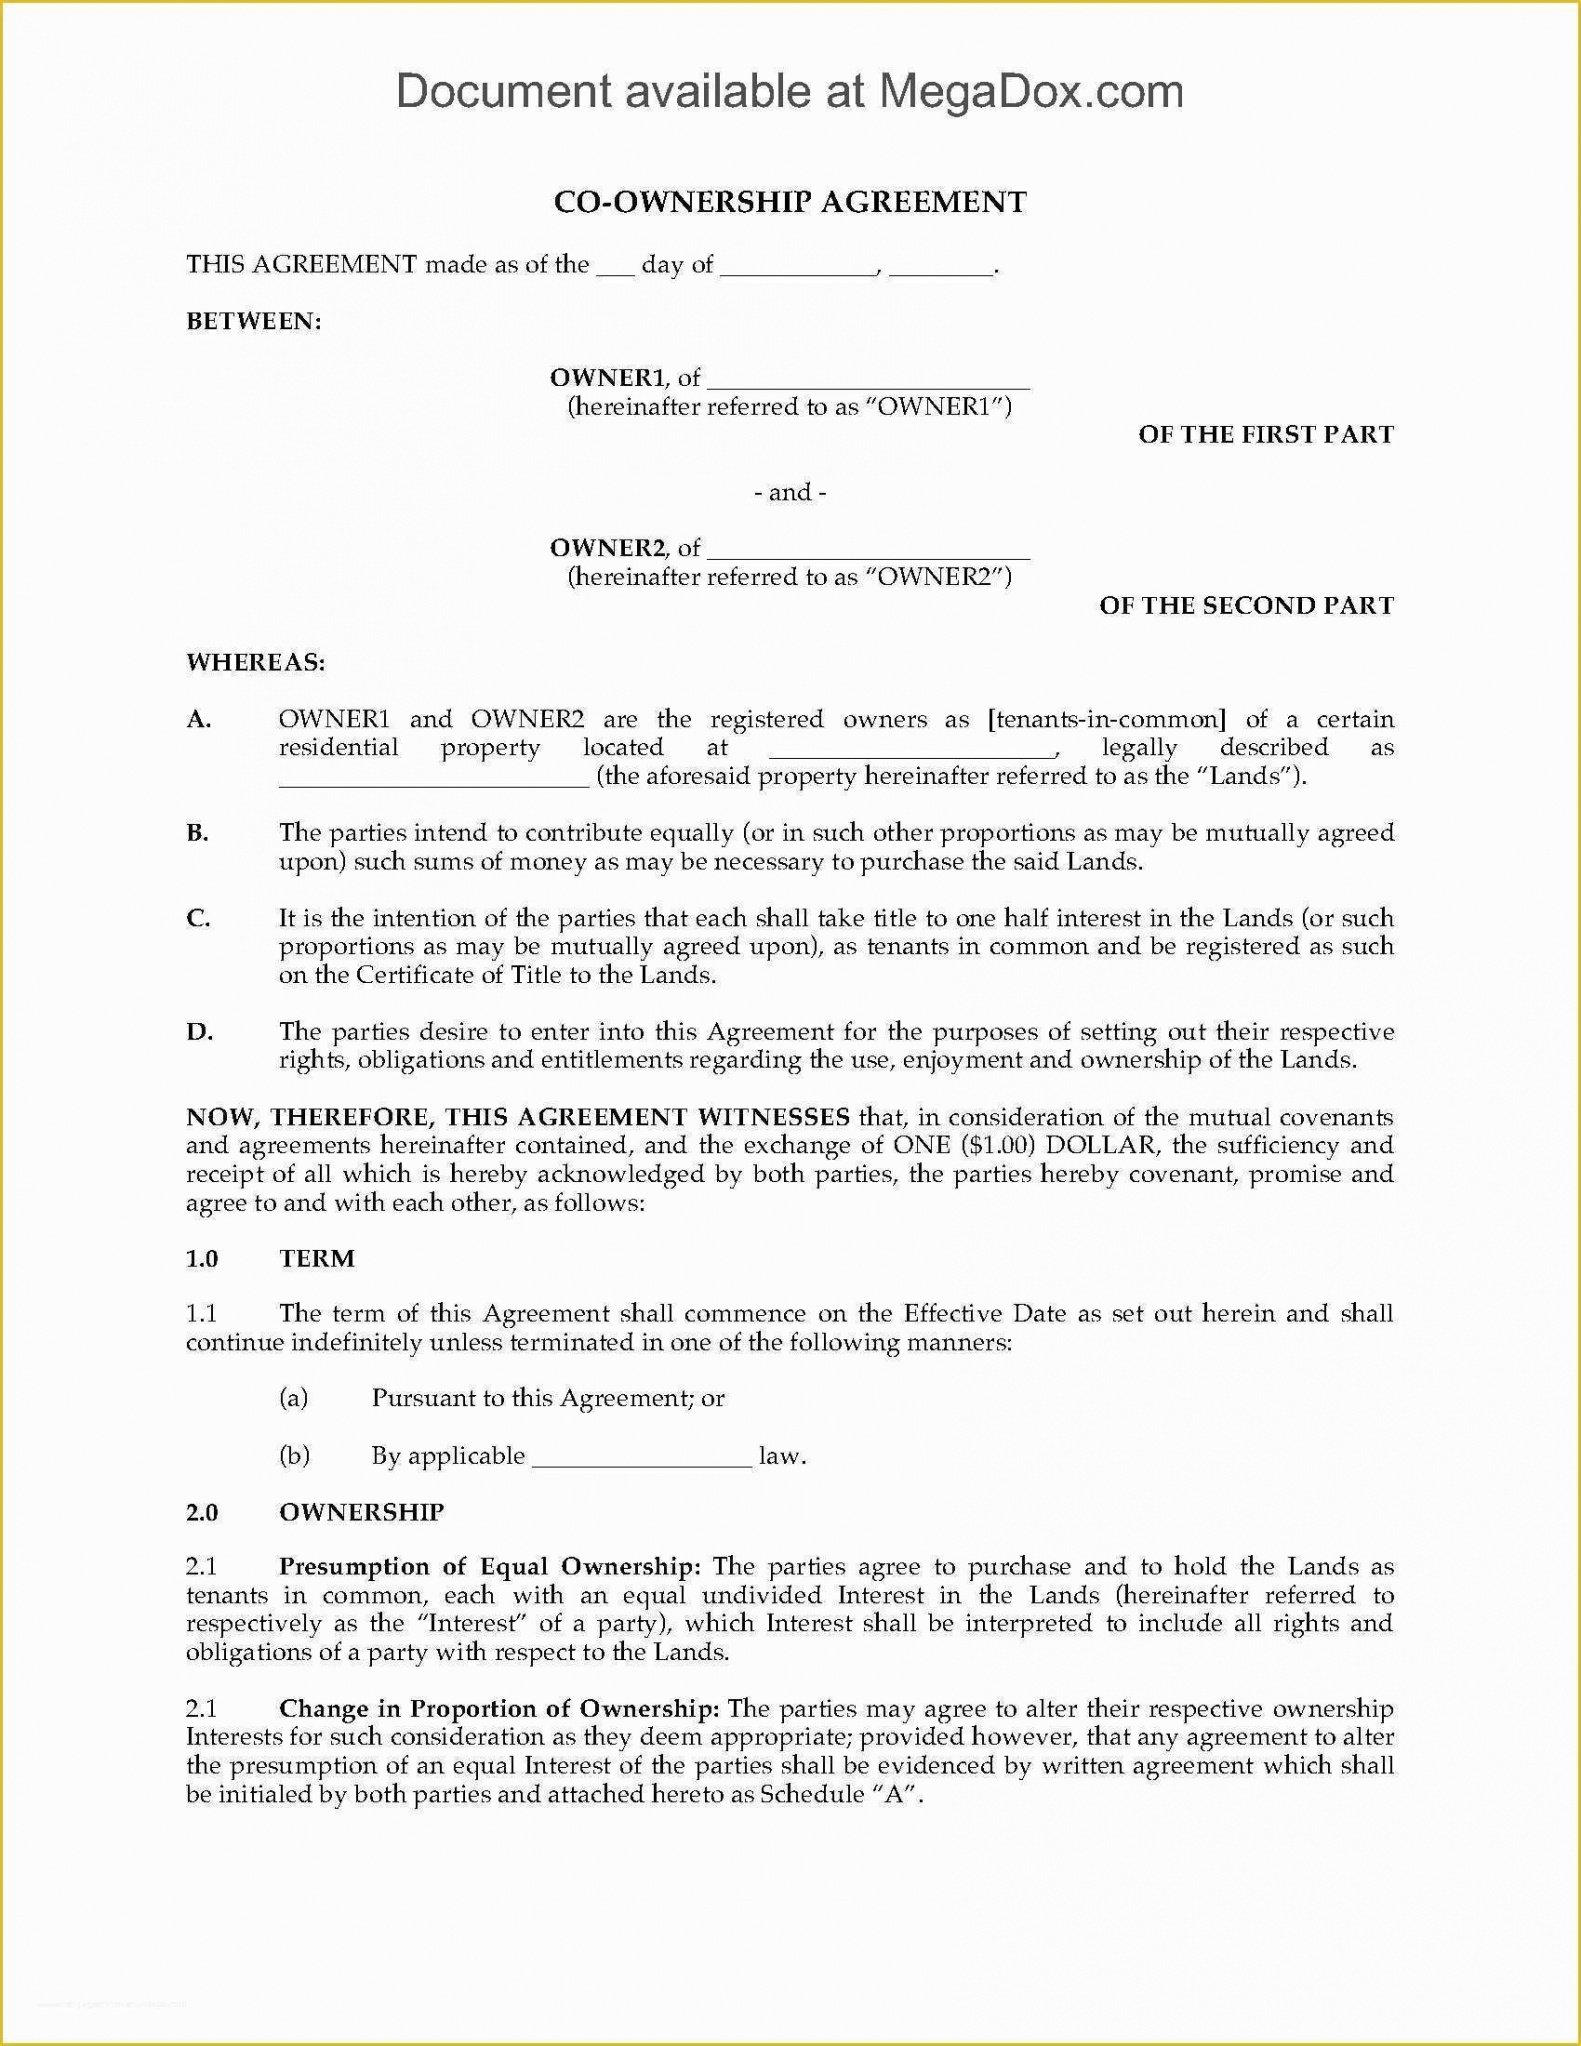 Costum Co-Ownership Contract Template Excel Sample